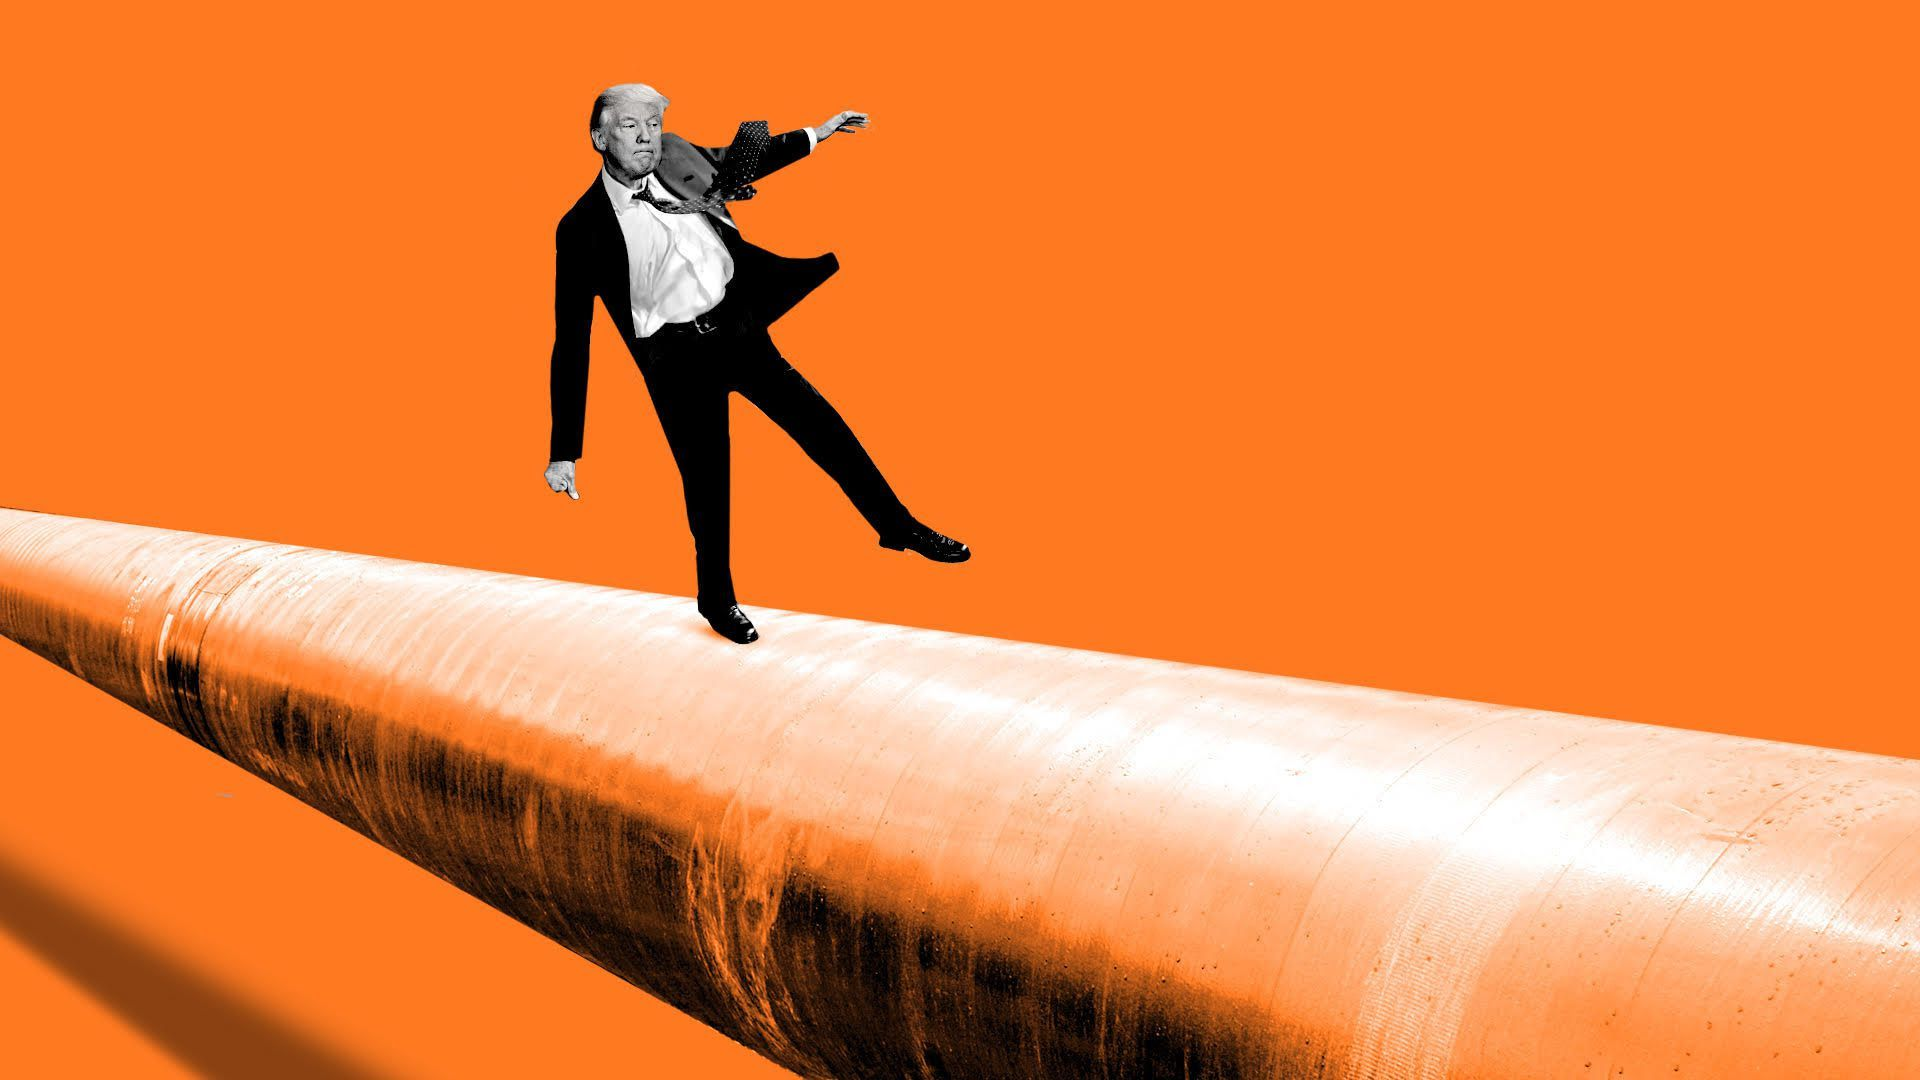 illustration of donald trump balancing on a natural gas pipeline